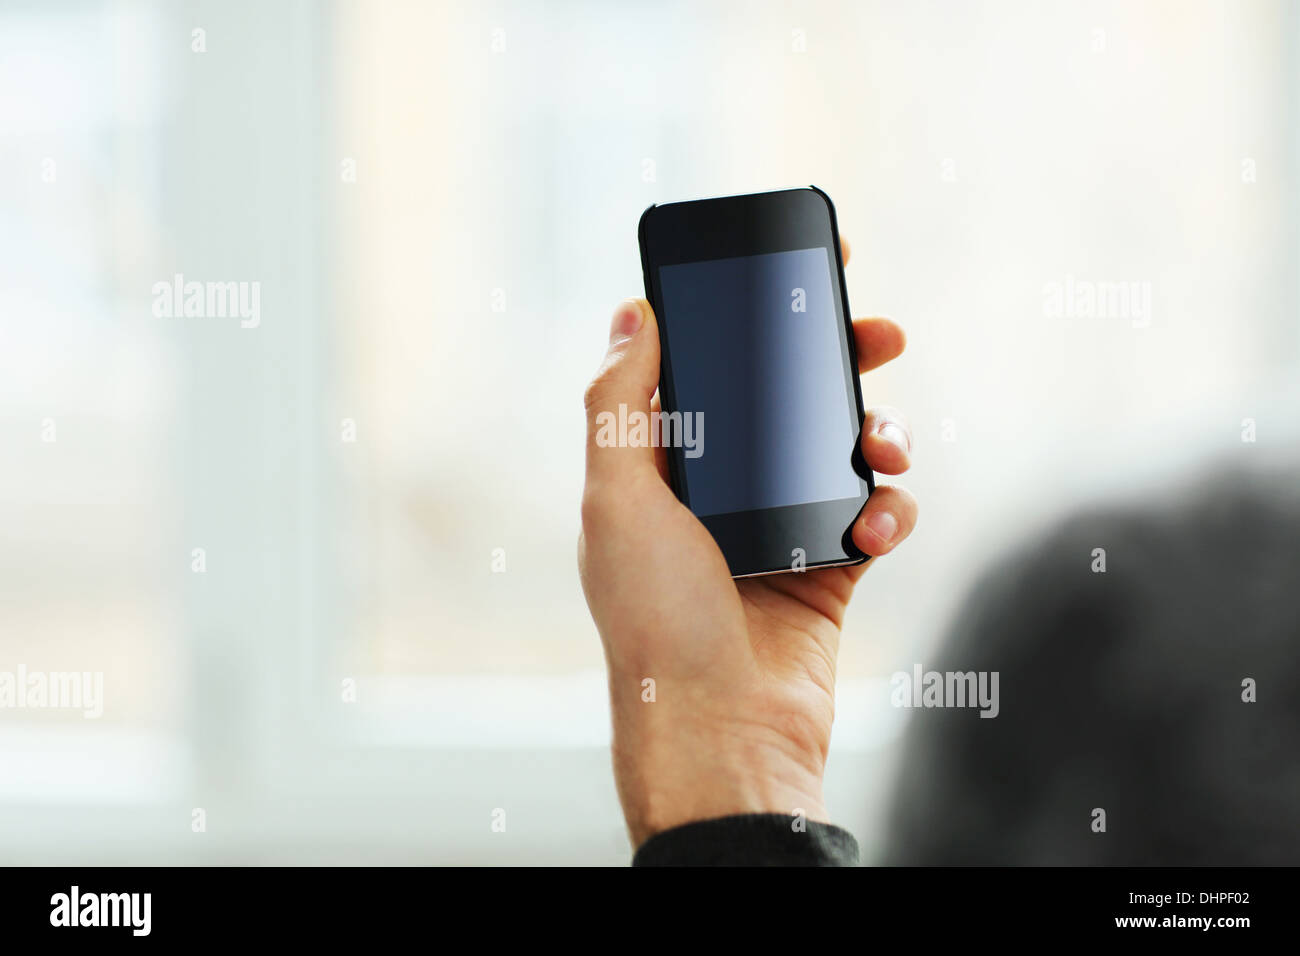 Closeup image of a male hand showing smartphone display - Stock Image